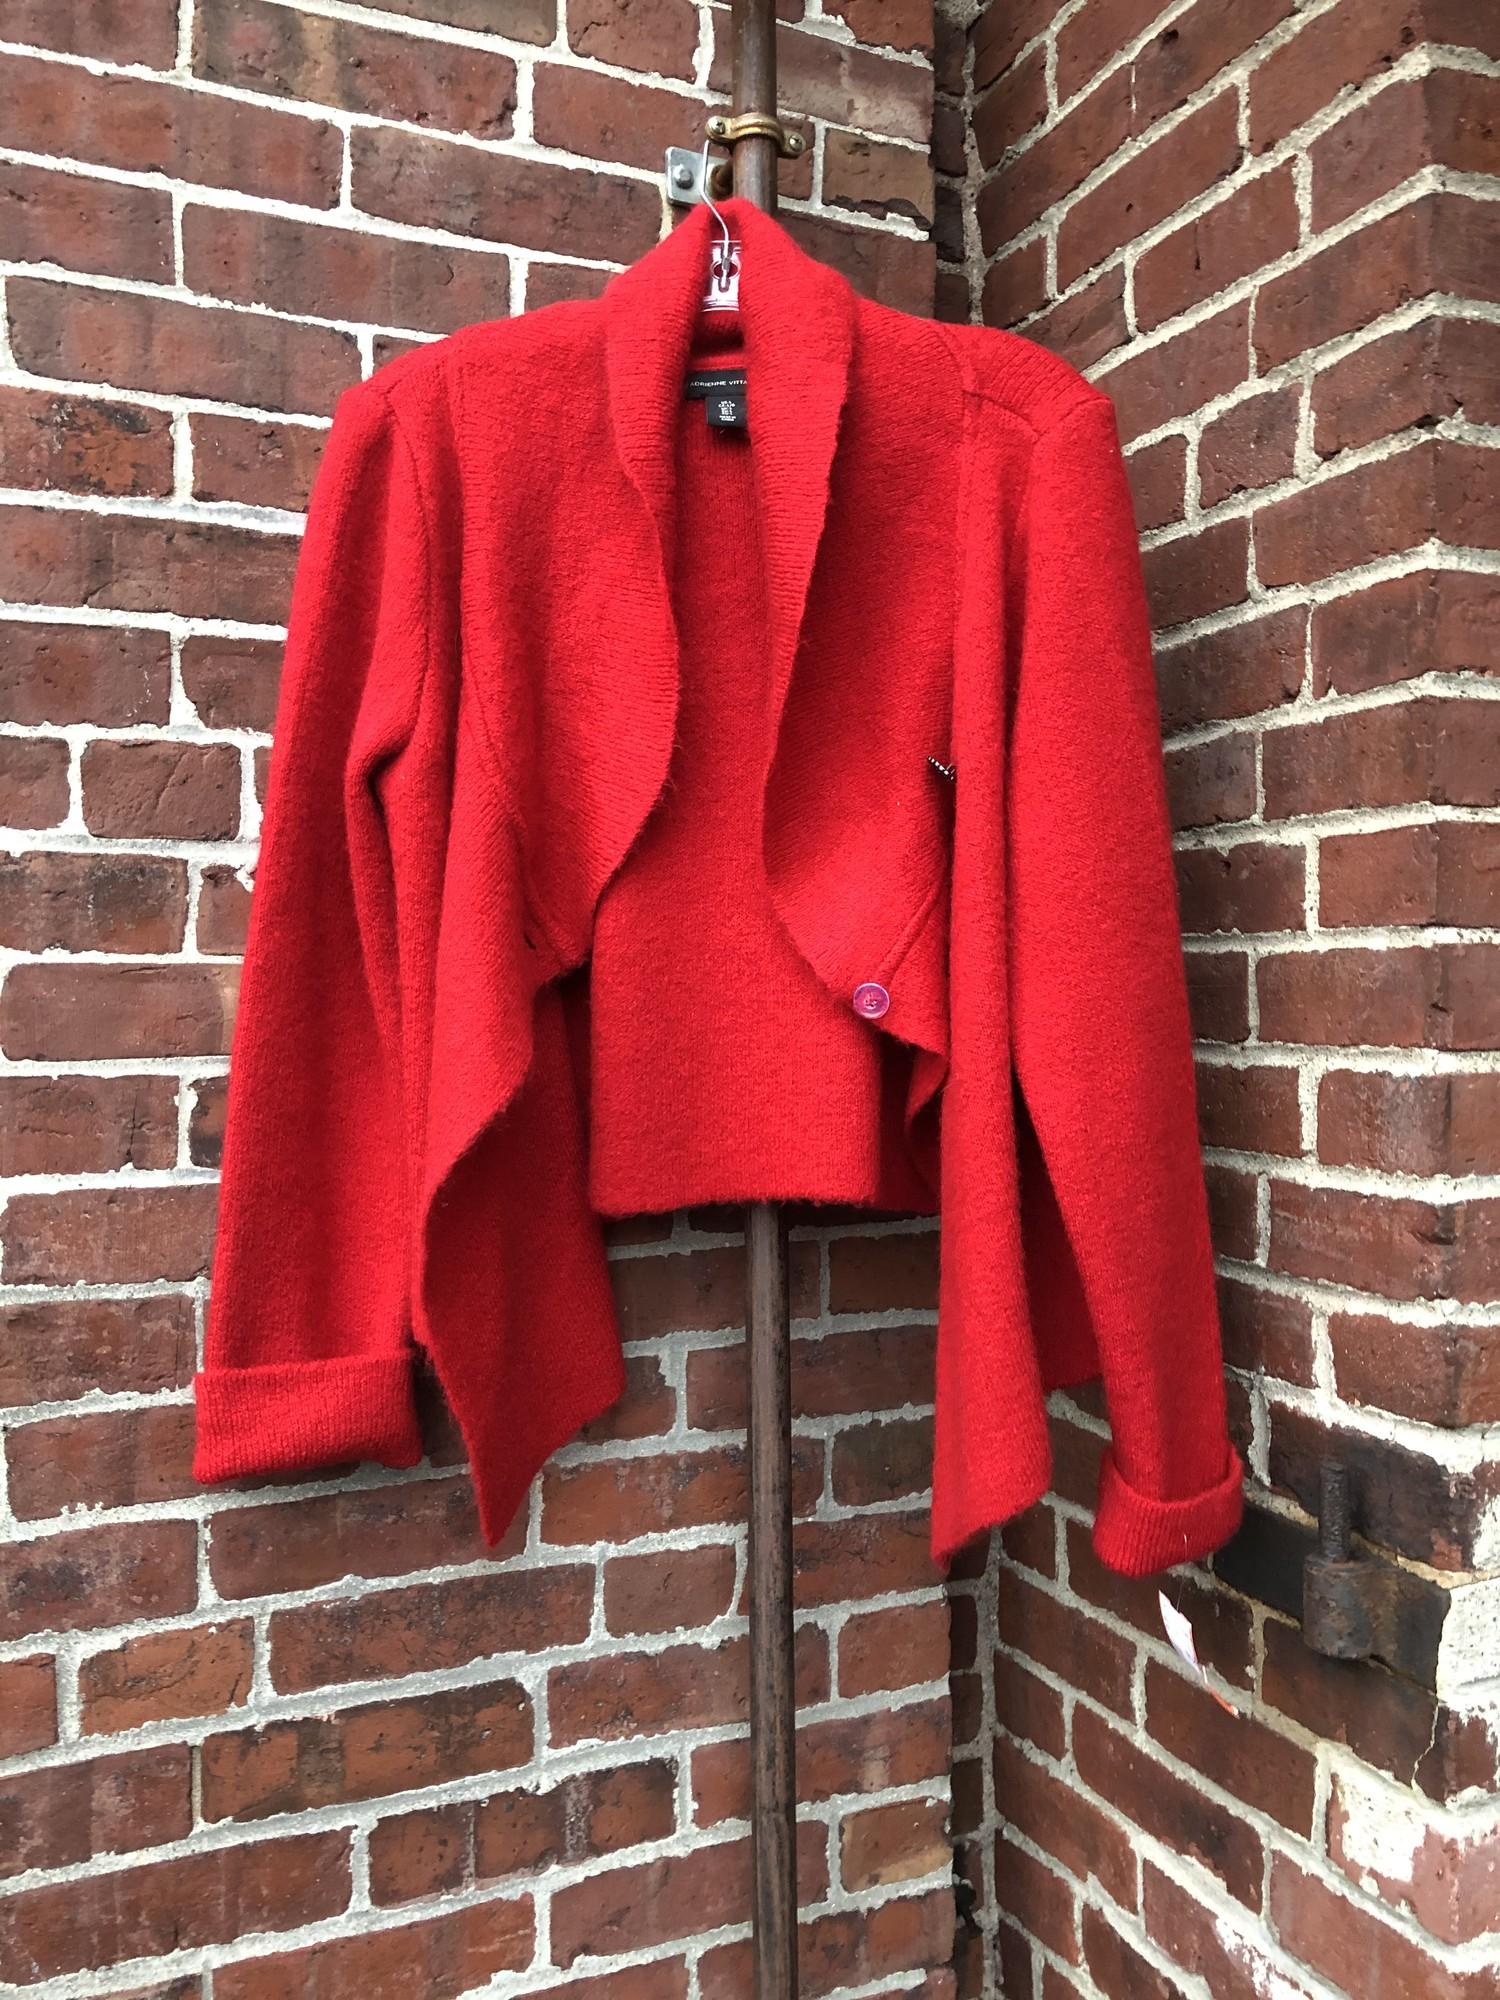 Adrienne Vittadini Cardig, Red, Size: Large